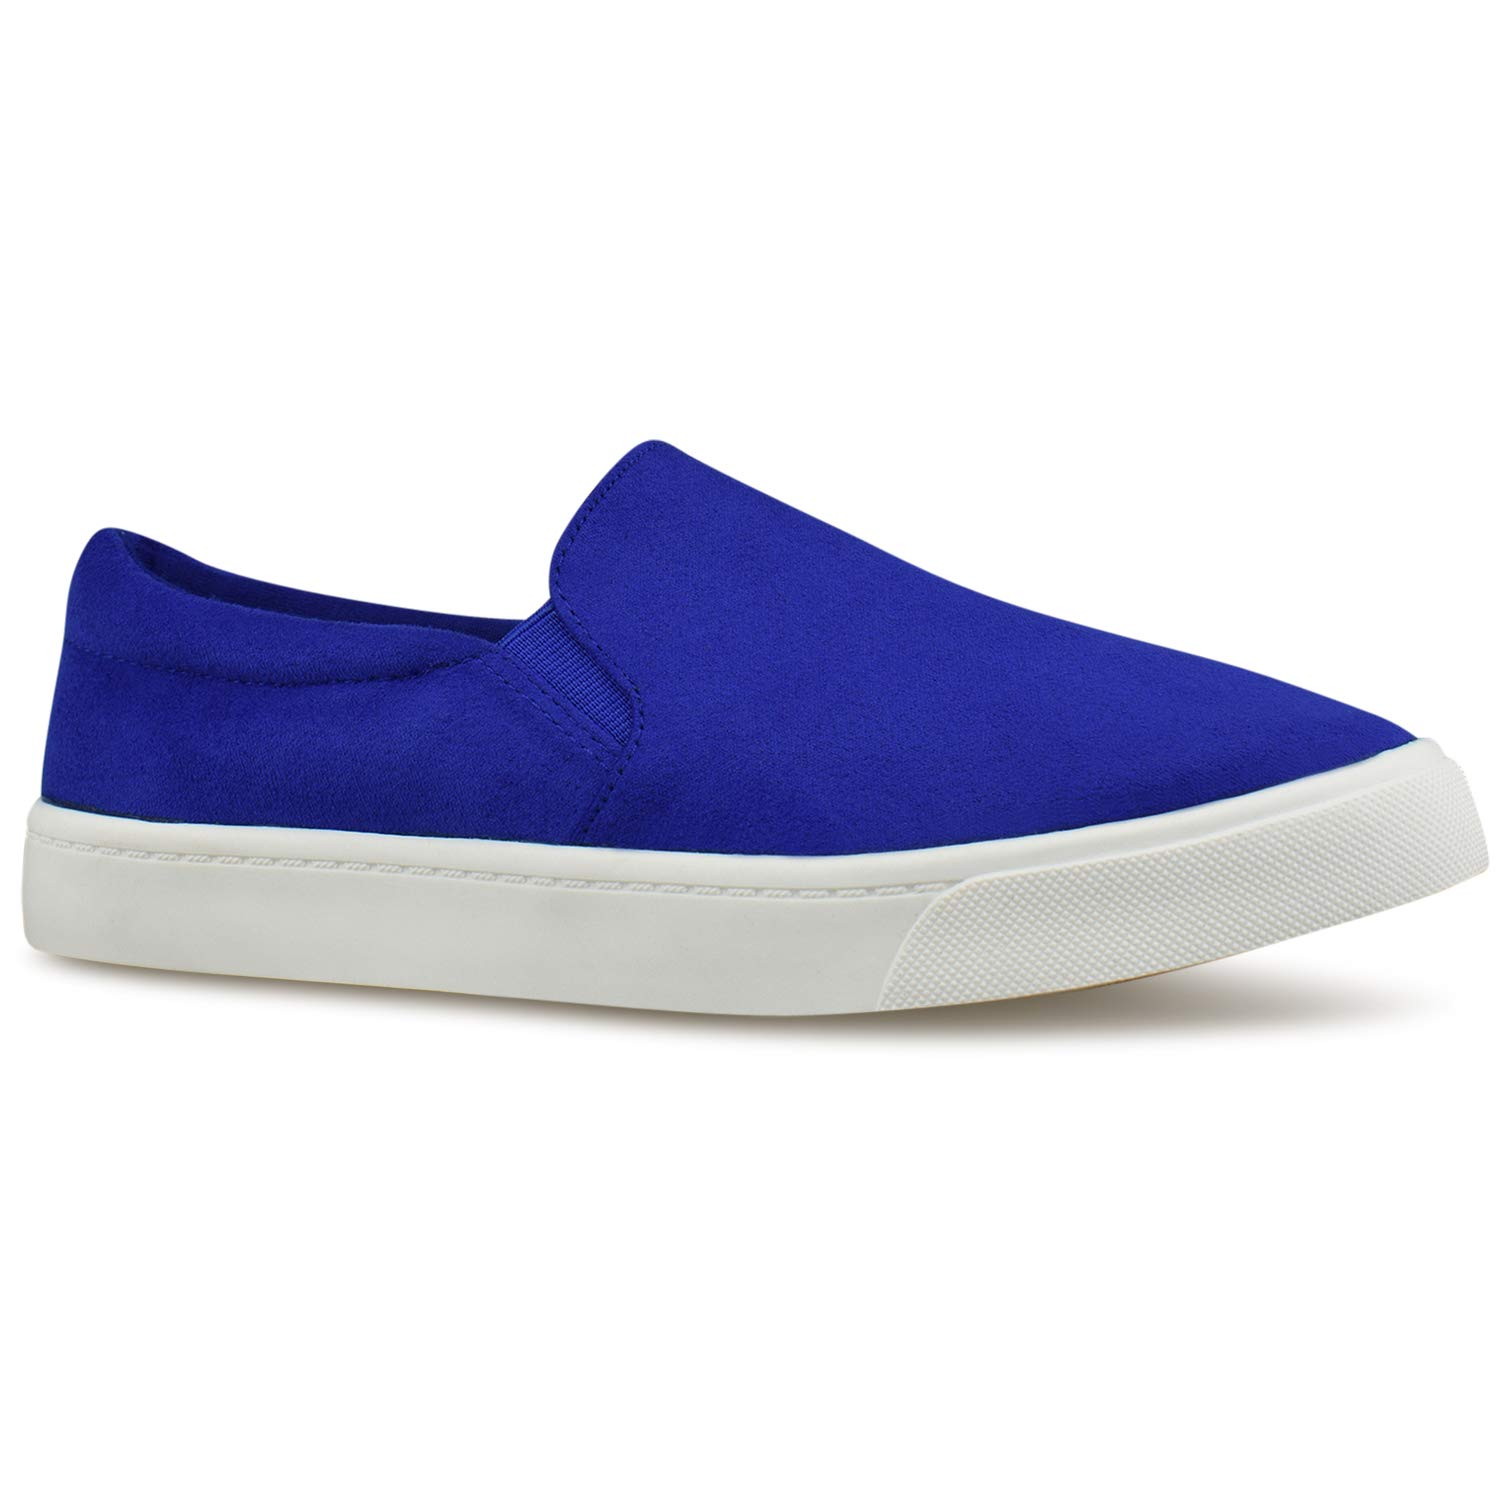 Electric bluee R Premier Standard Women's Casual Walking shoes - Easy Everyday Fashion Slip on